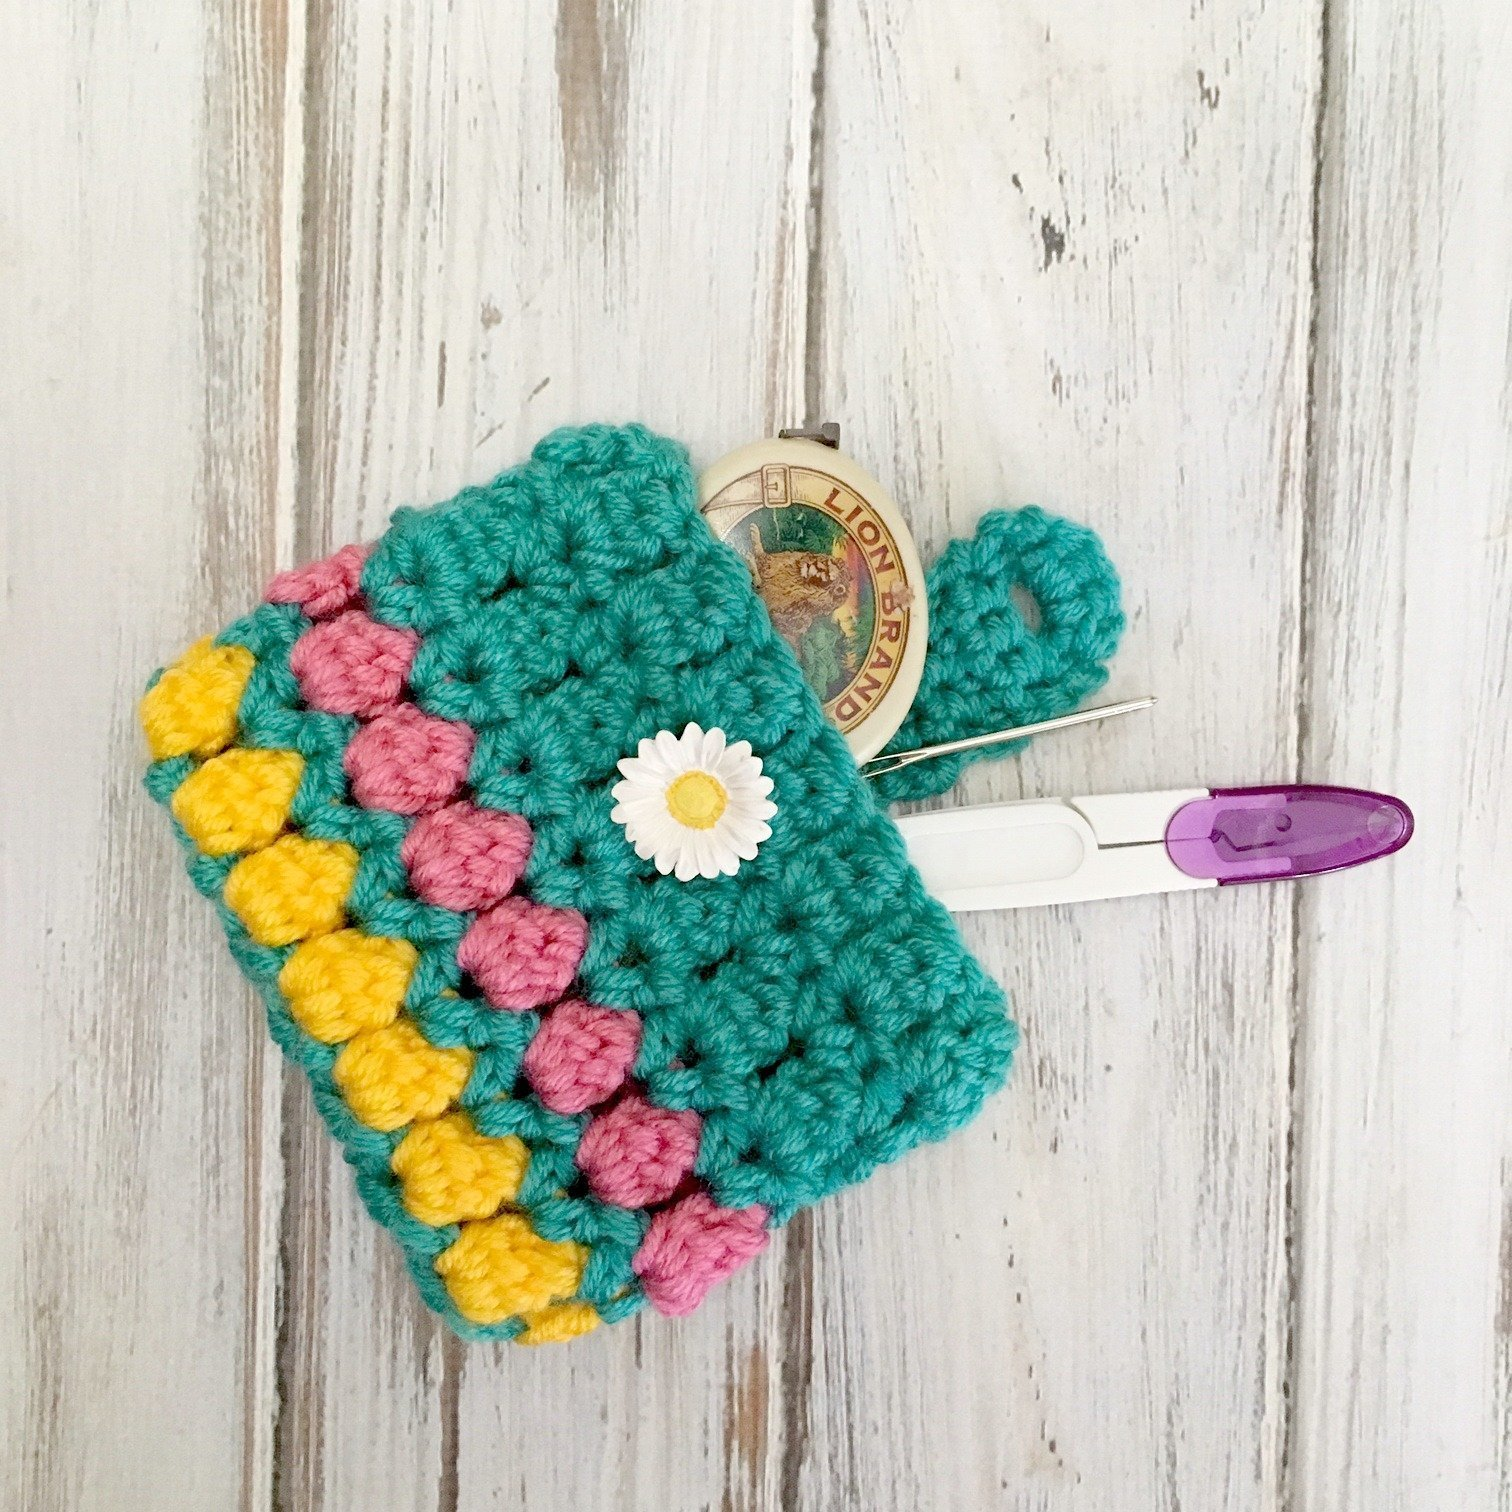 Learn to crochet this quick and easy coin purse with the free pattern for the Summer Fun Coin Purse